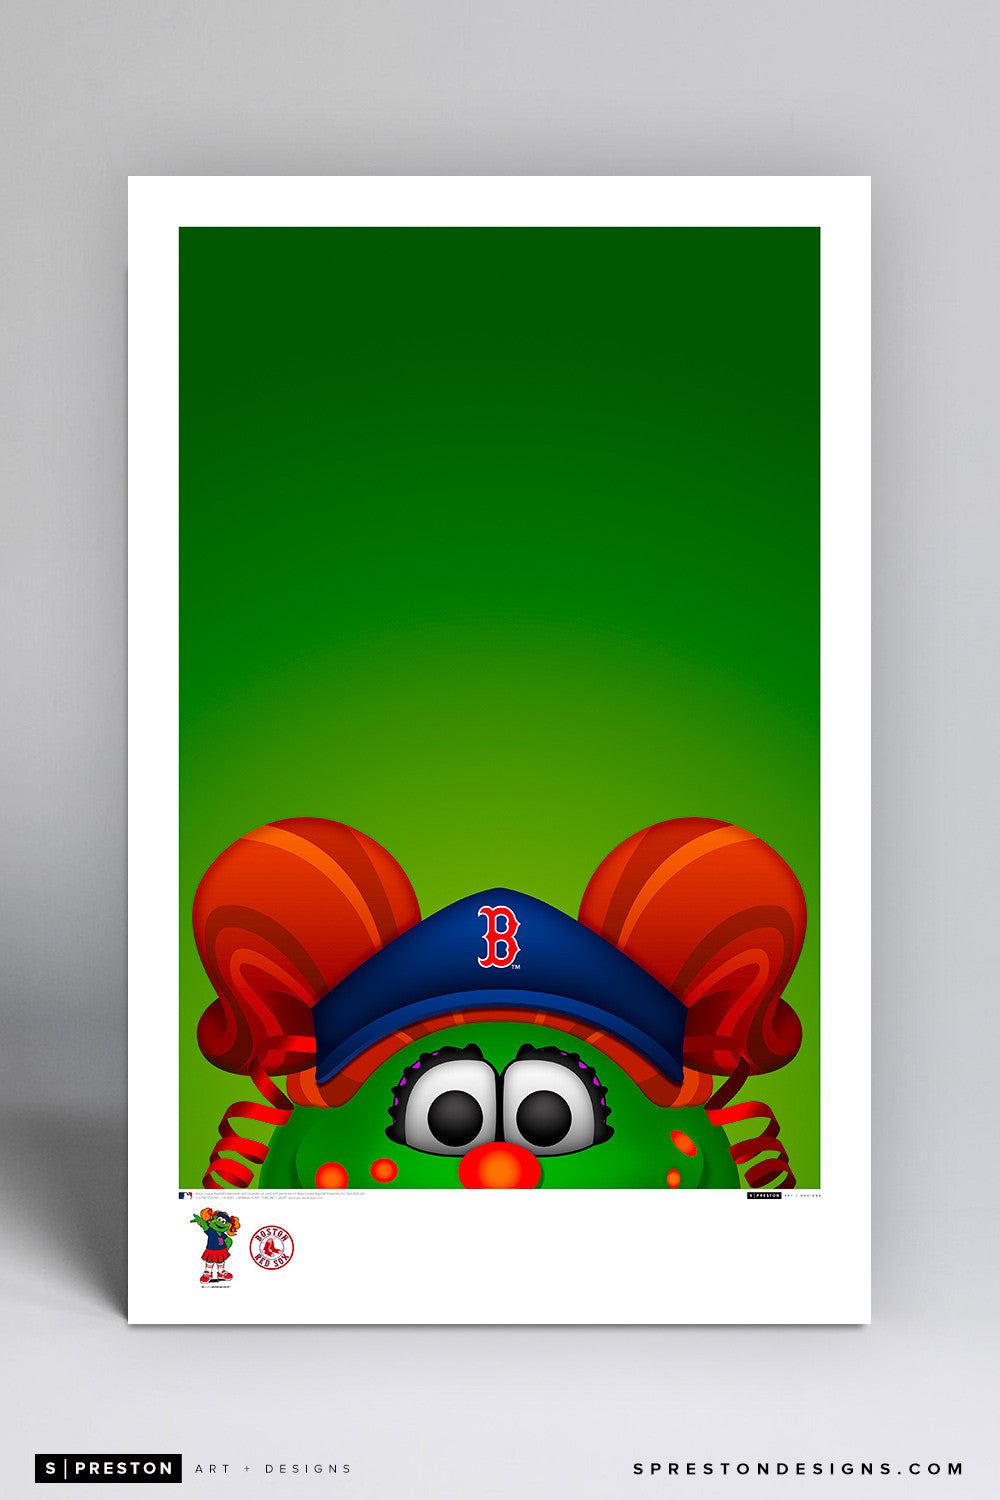 Minimalist Tessie The Green Monster Poster Print Boston Red Sox - S Preston